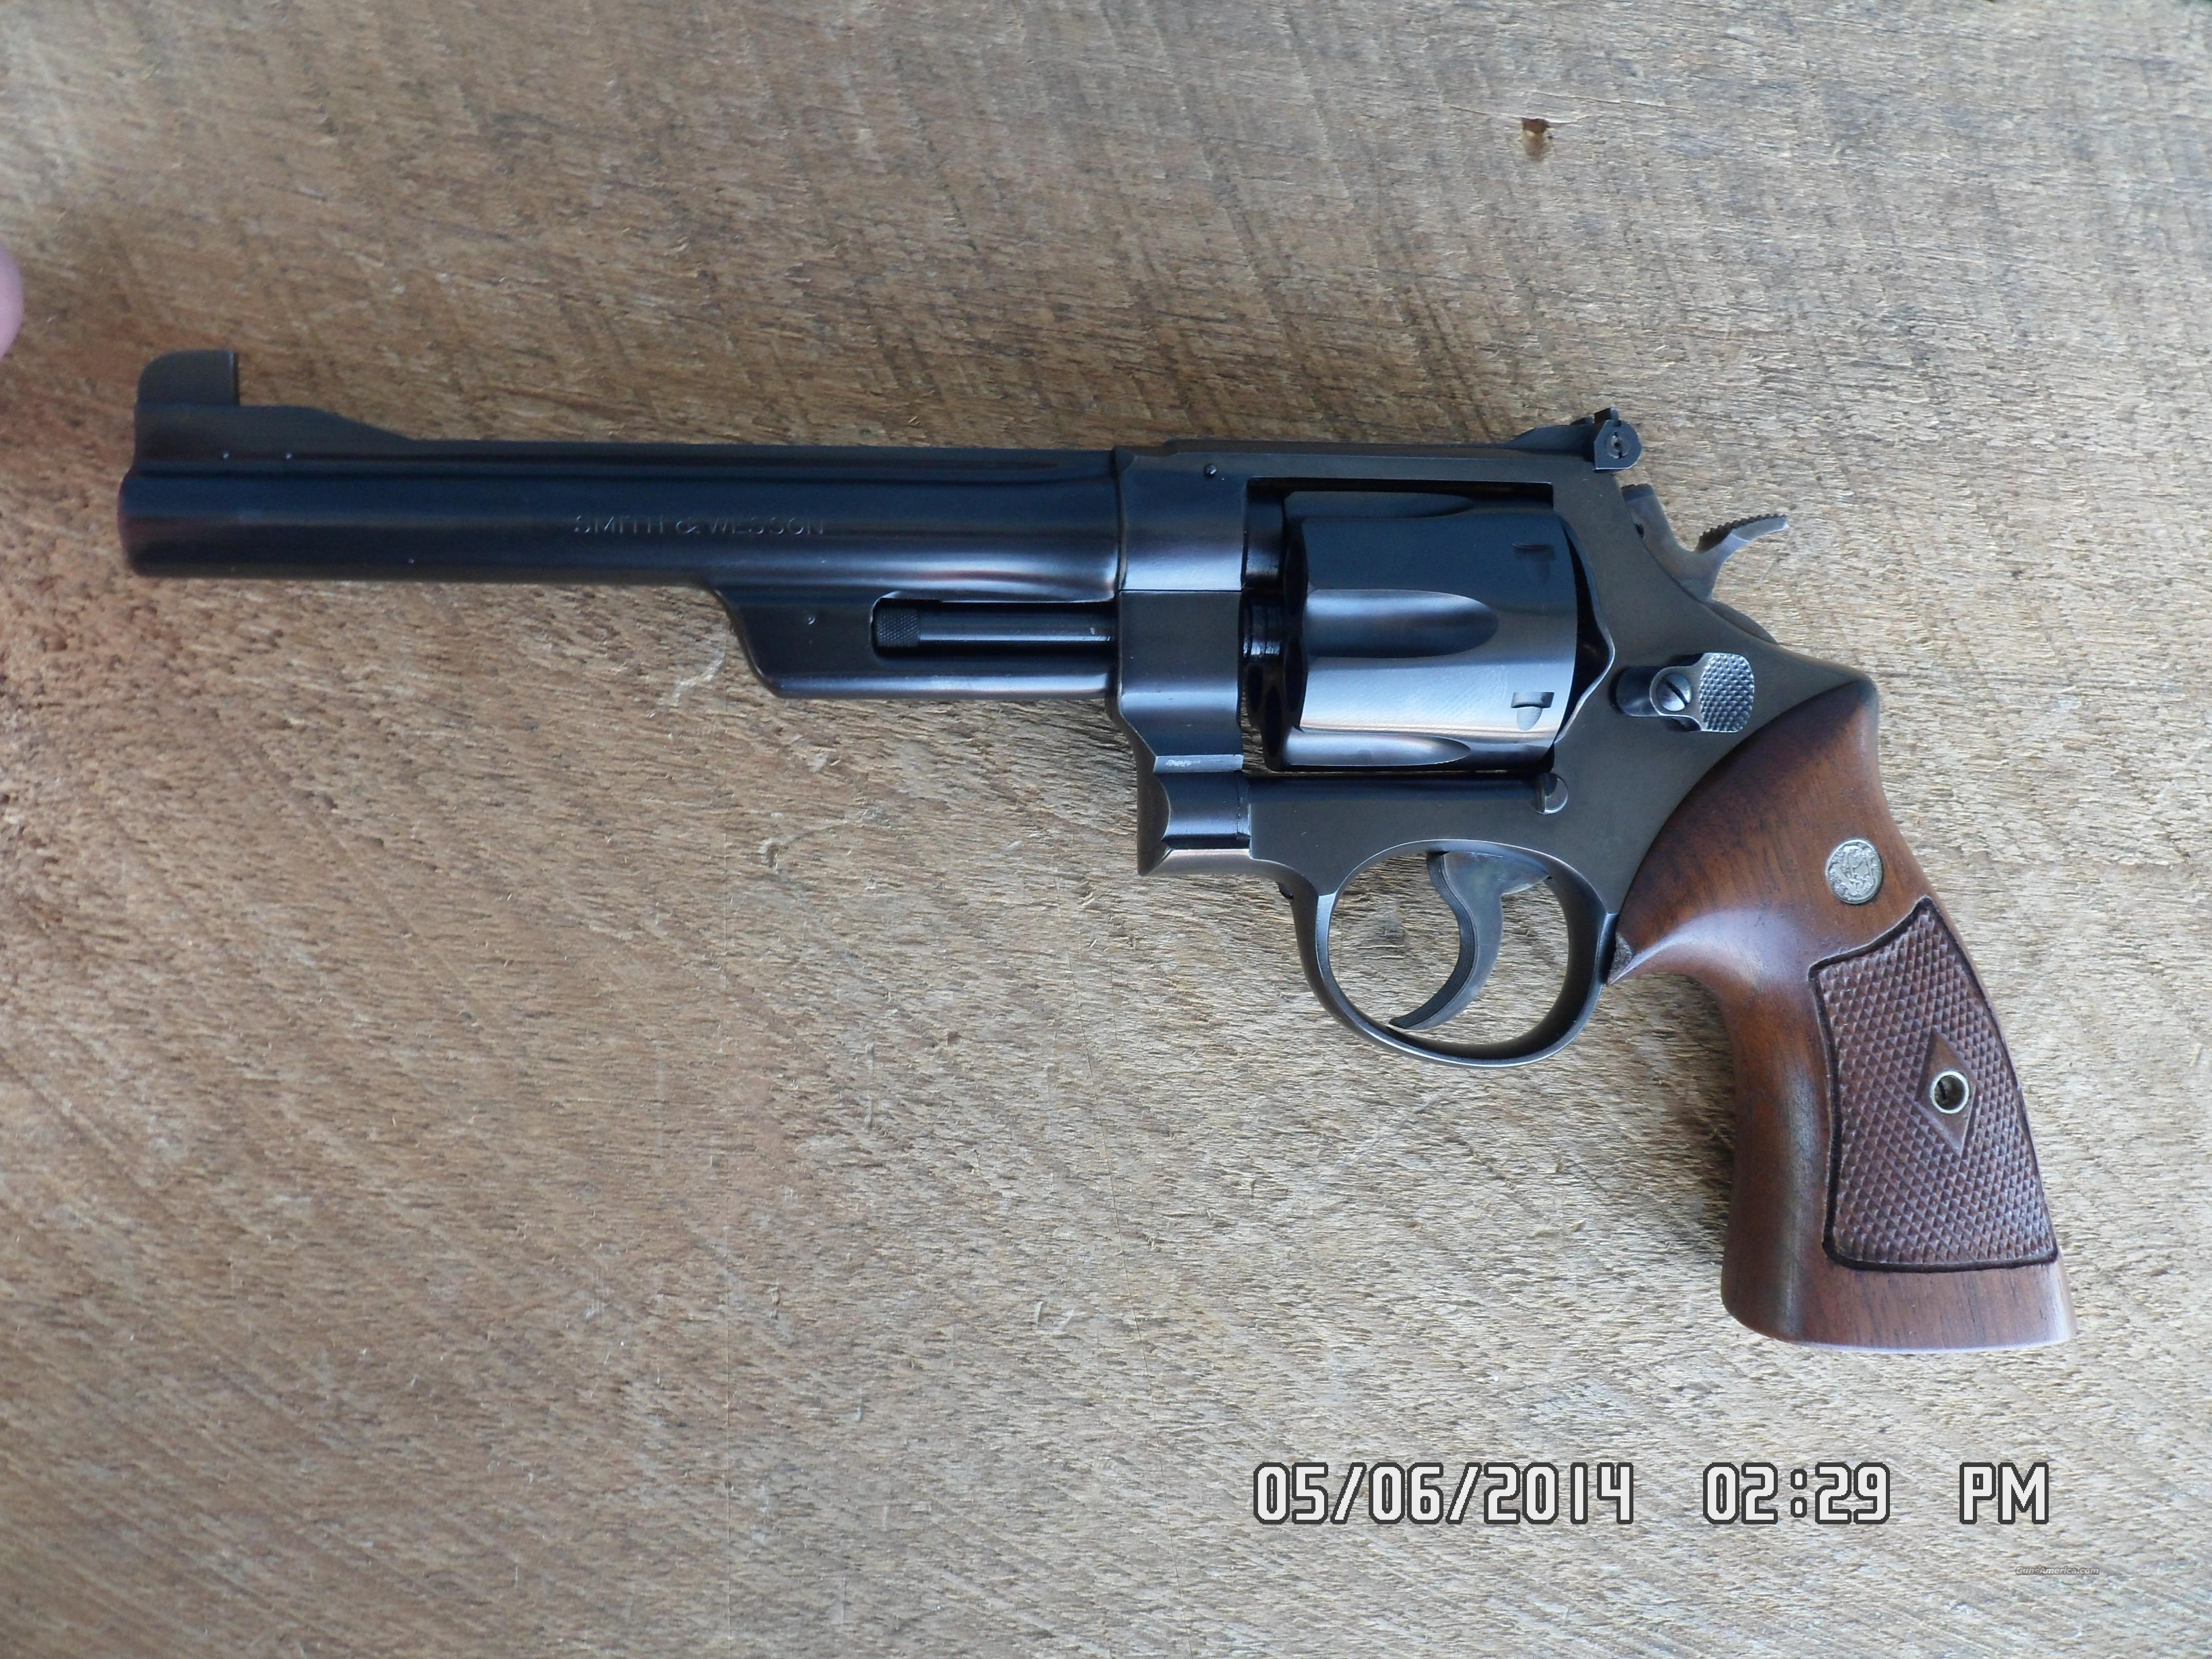 SMITH & WESSON MODEL 1950 (.44 TARGET 4TH MODEL) .44 S&W SPECIAL REVOLVER 98% PLUS ORIGINAL 1953 CONDITION.  Guns > Pistols > Smith & Wesson Revolvers > Full Frame Revolver